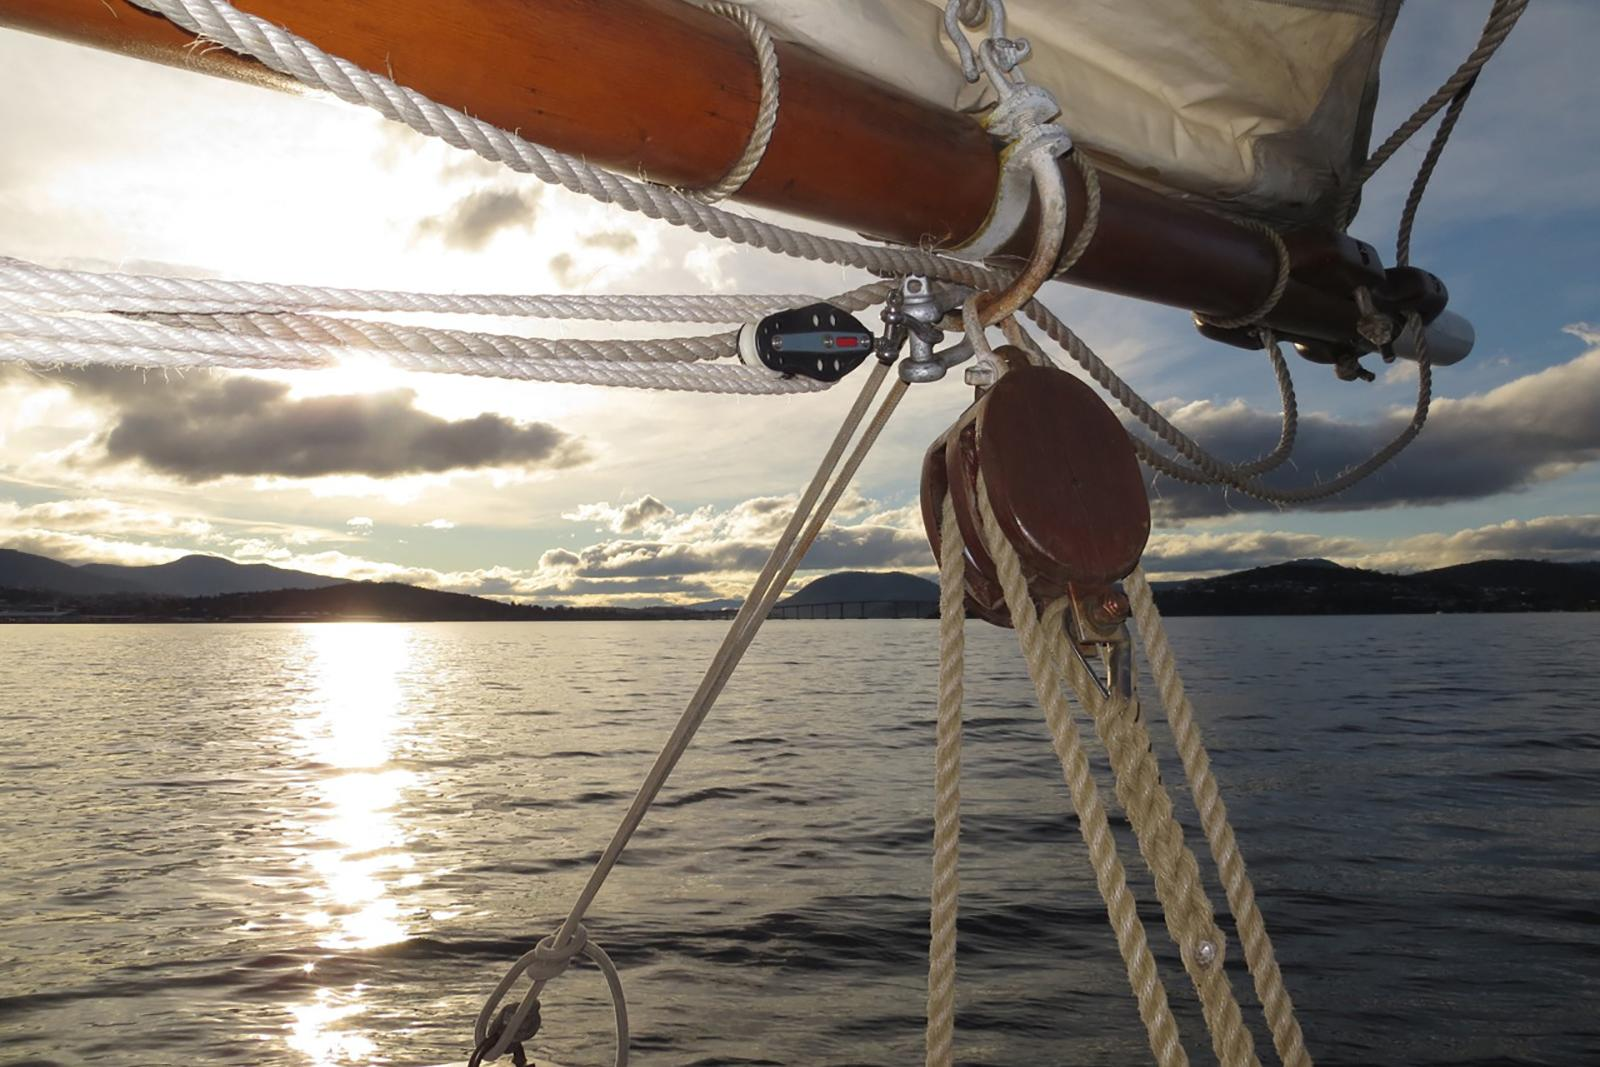 Sailing on the Derwent River Hobart Tasmania